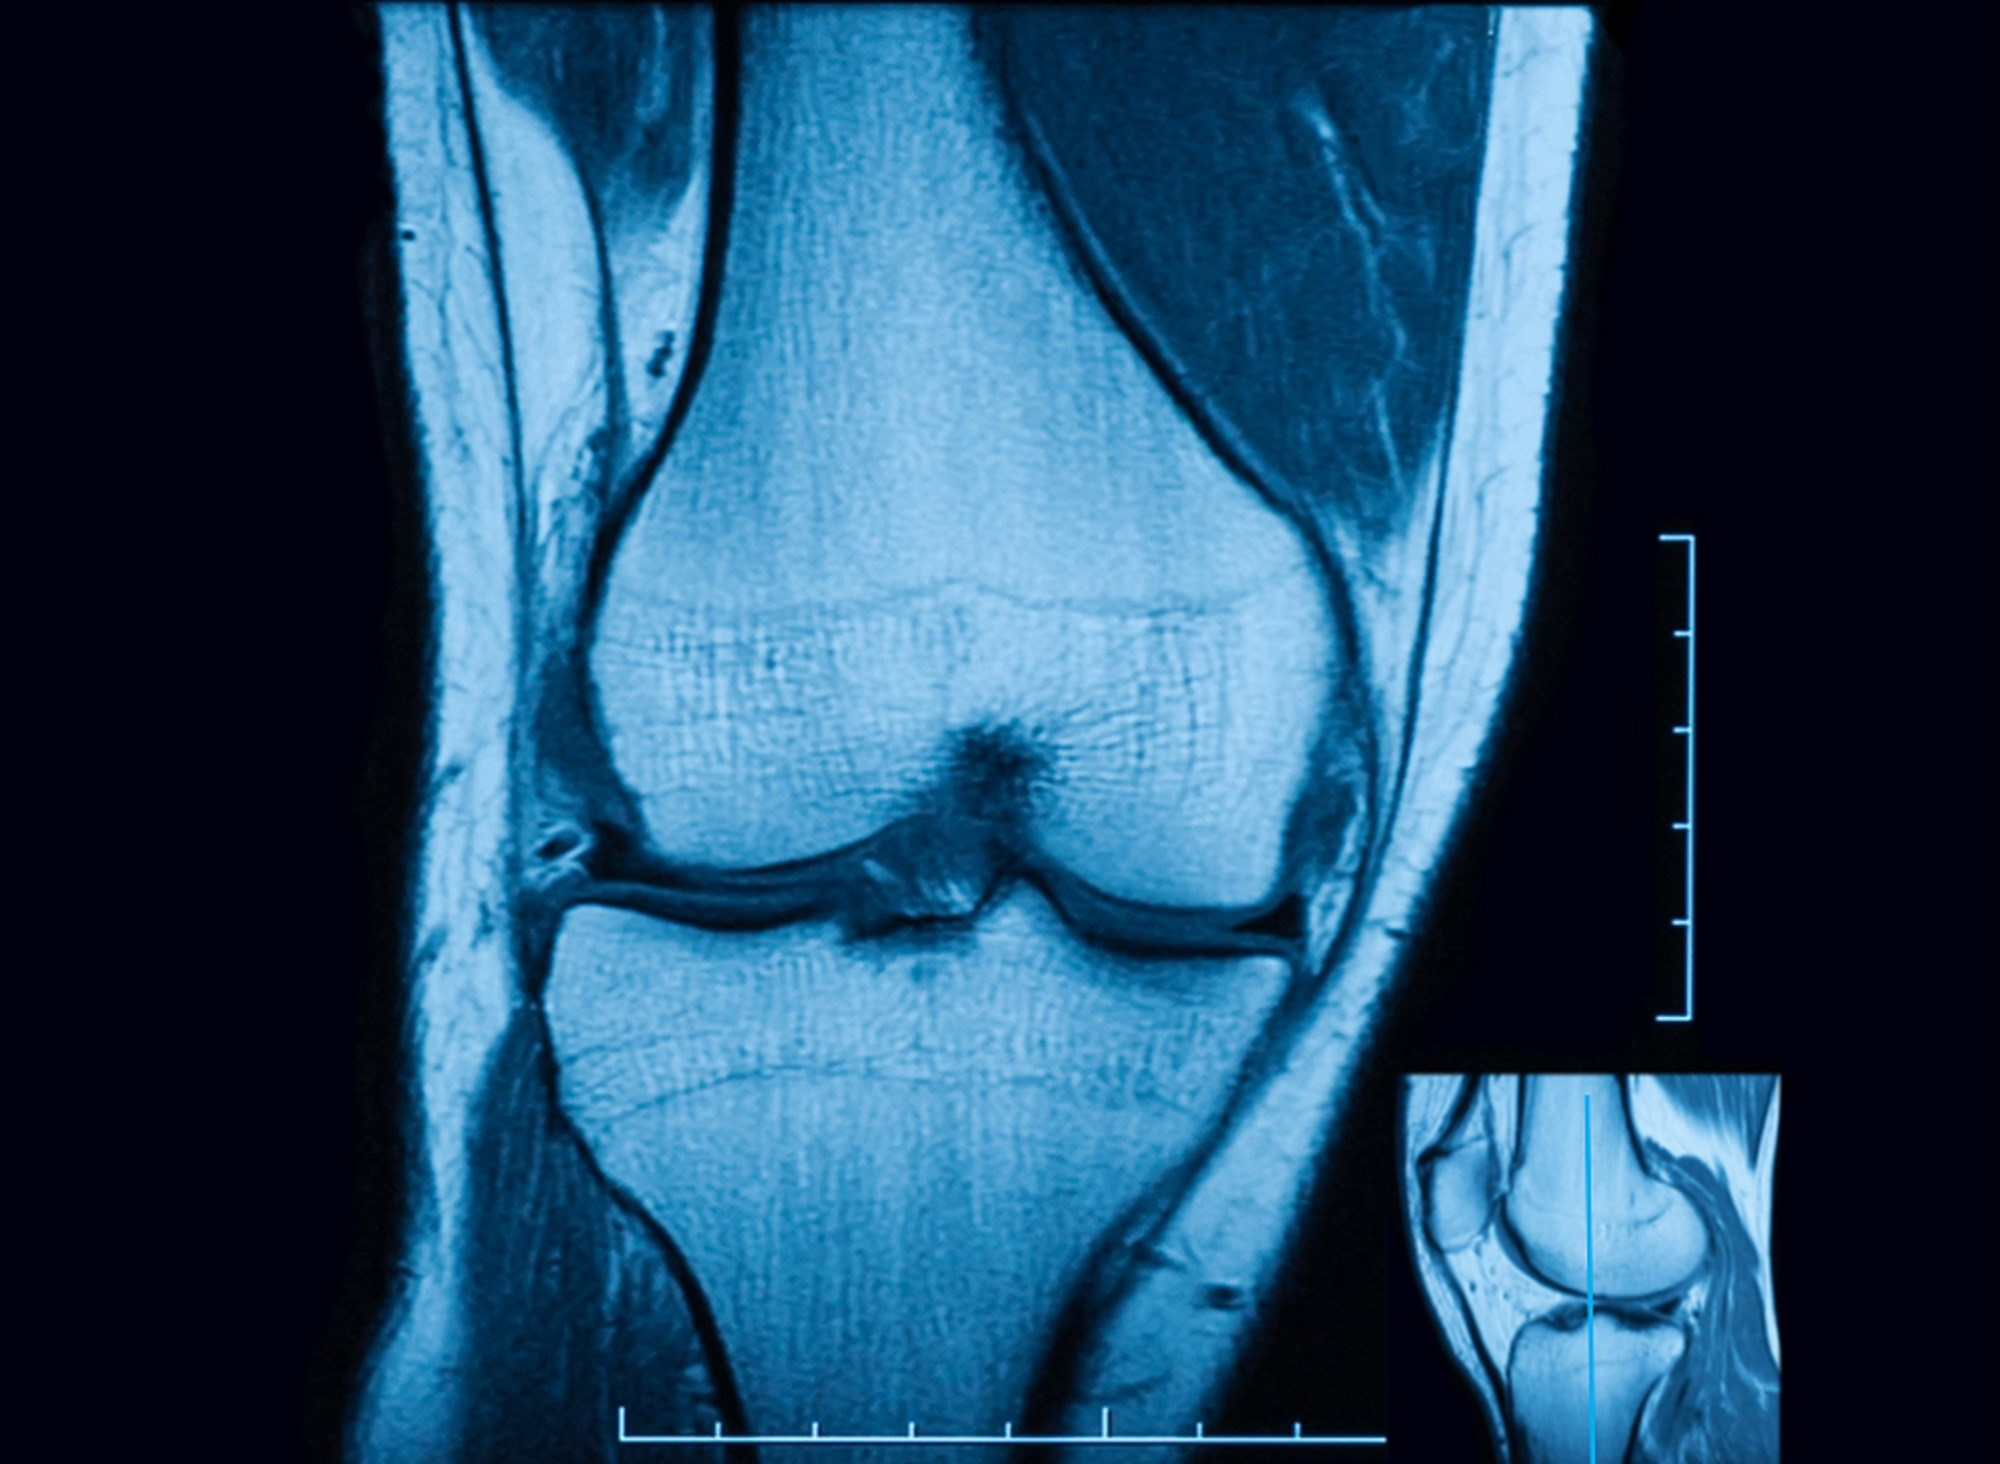 Knee Effusion Volume Predicts Osteoarthritis Progression and Knee Replacement